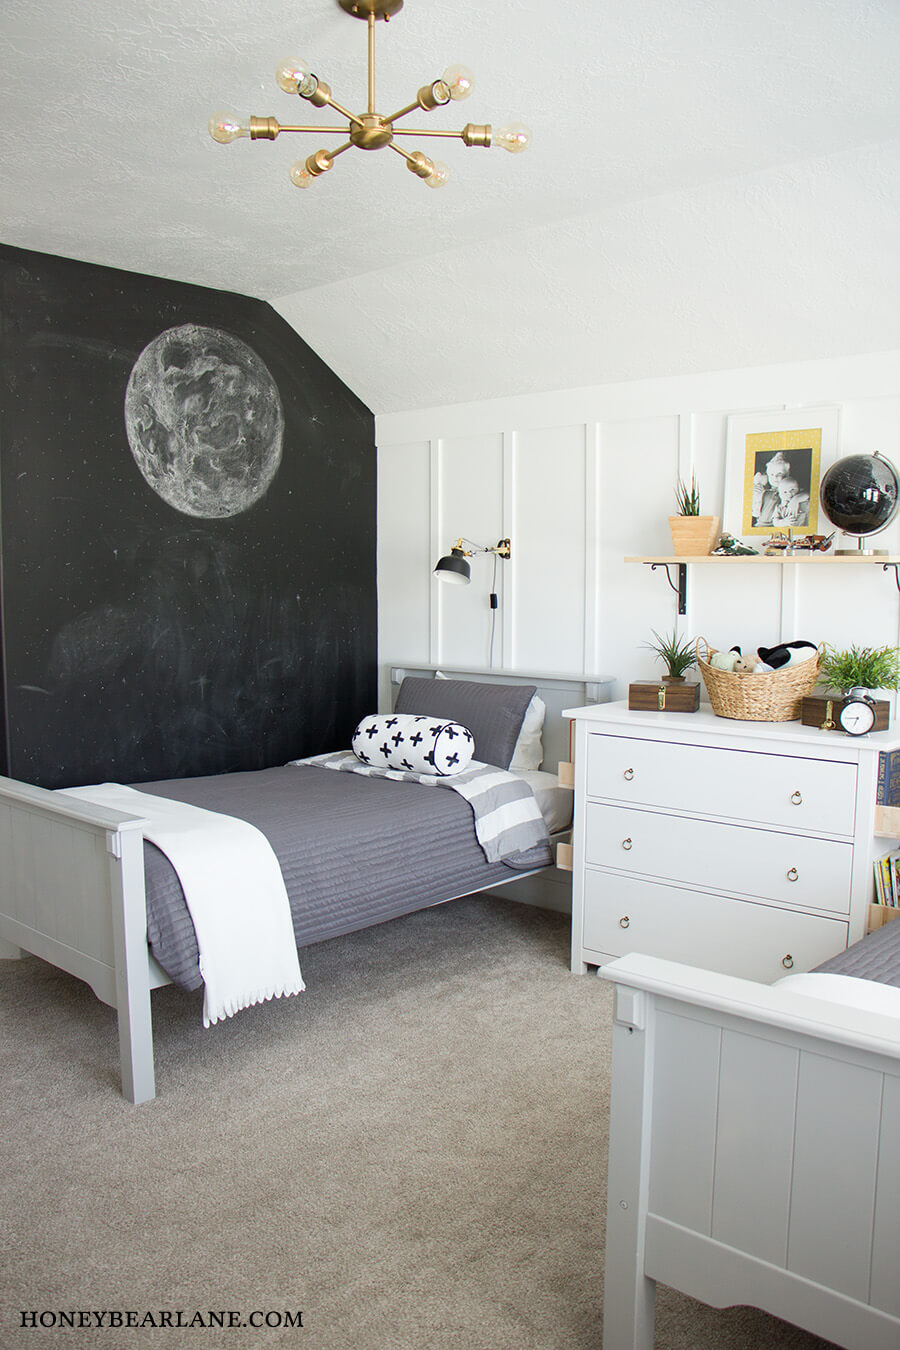 A chalkboard wall can be a great addition to any bedroom. Source: Honey Bearlane